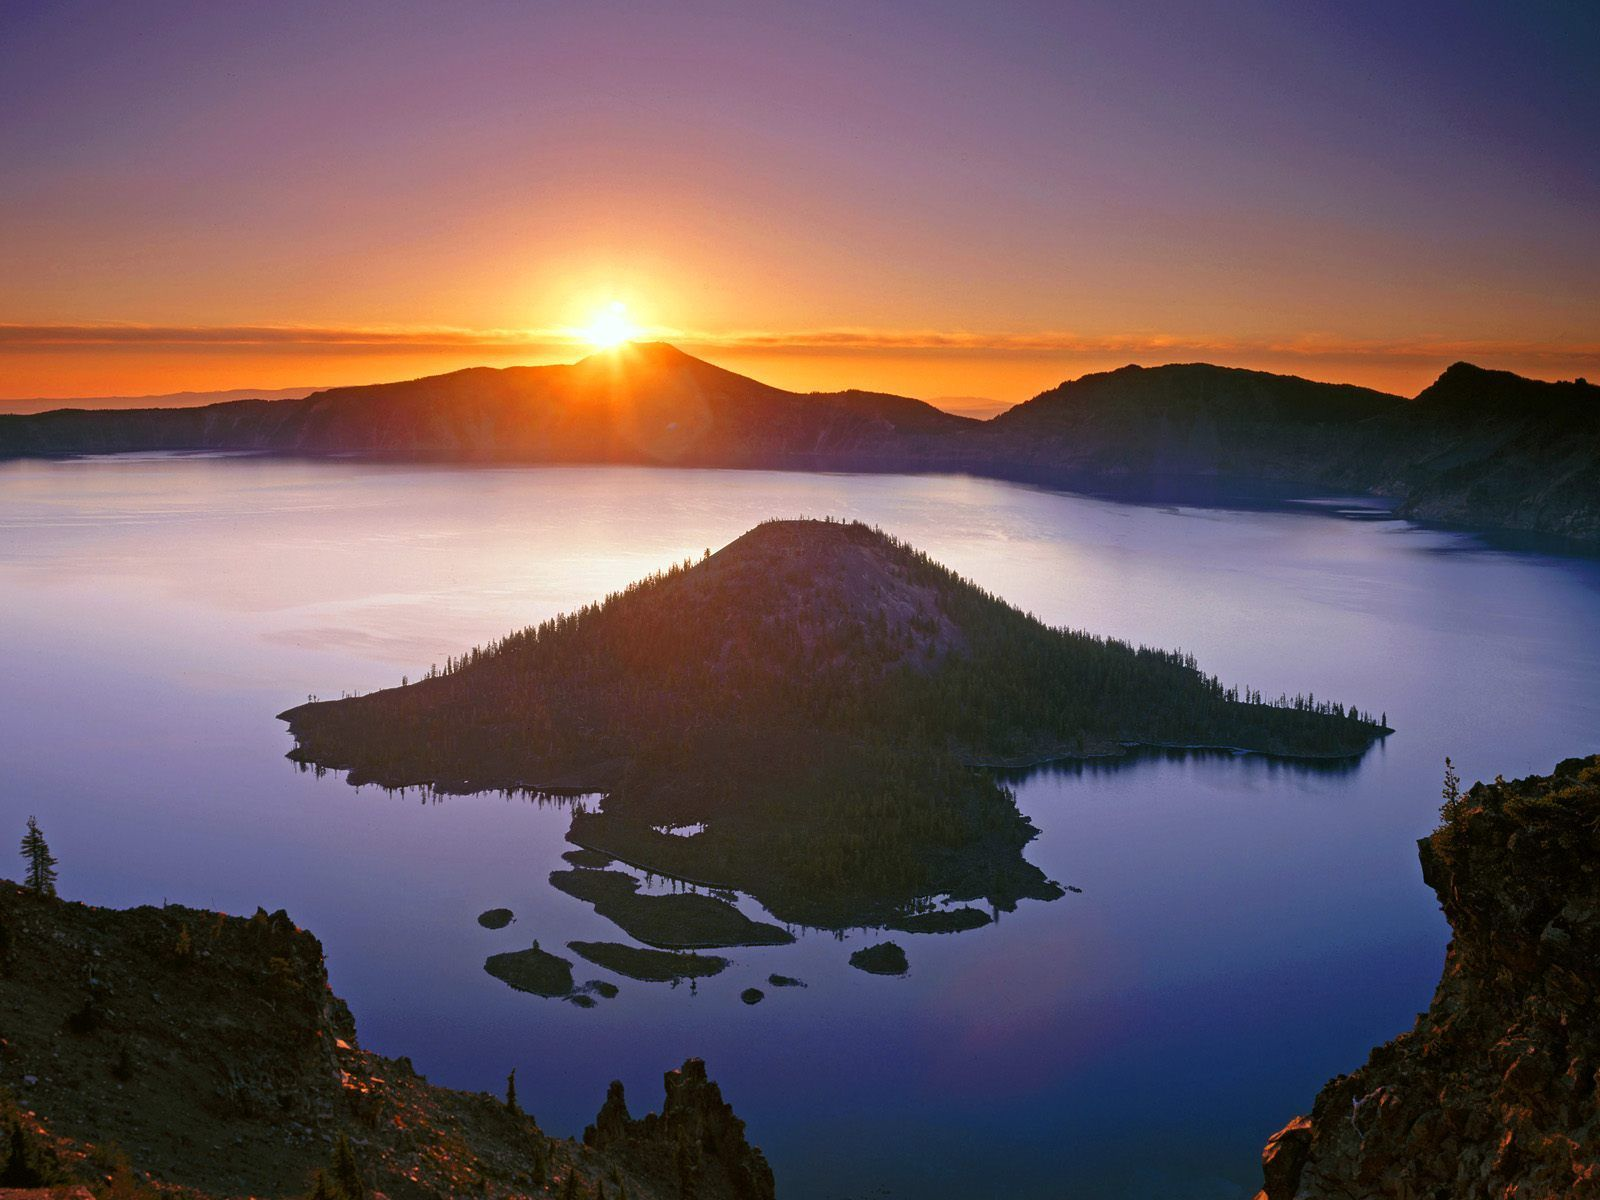 crater lake wallpaper widescreen. | pixelstalk